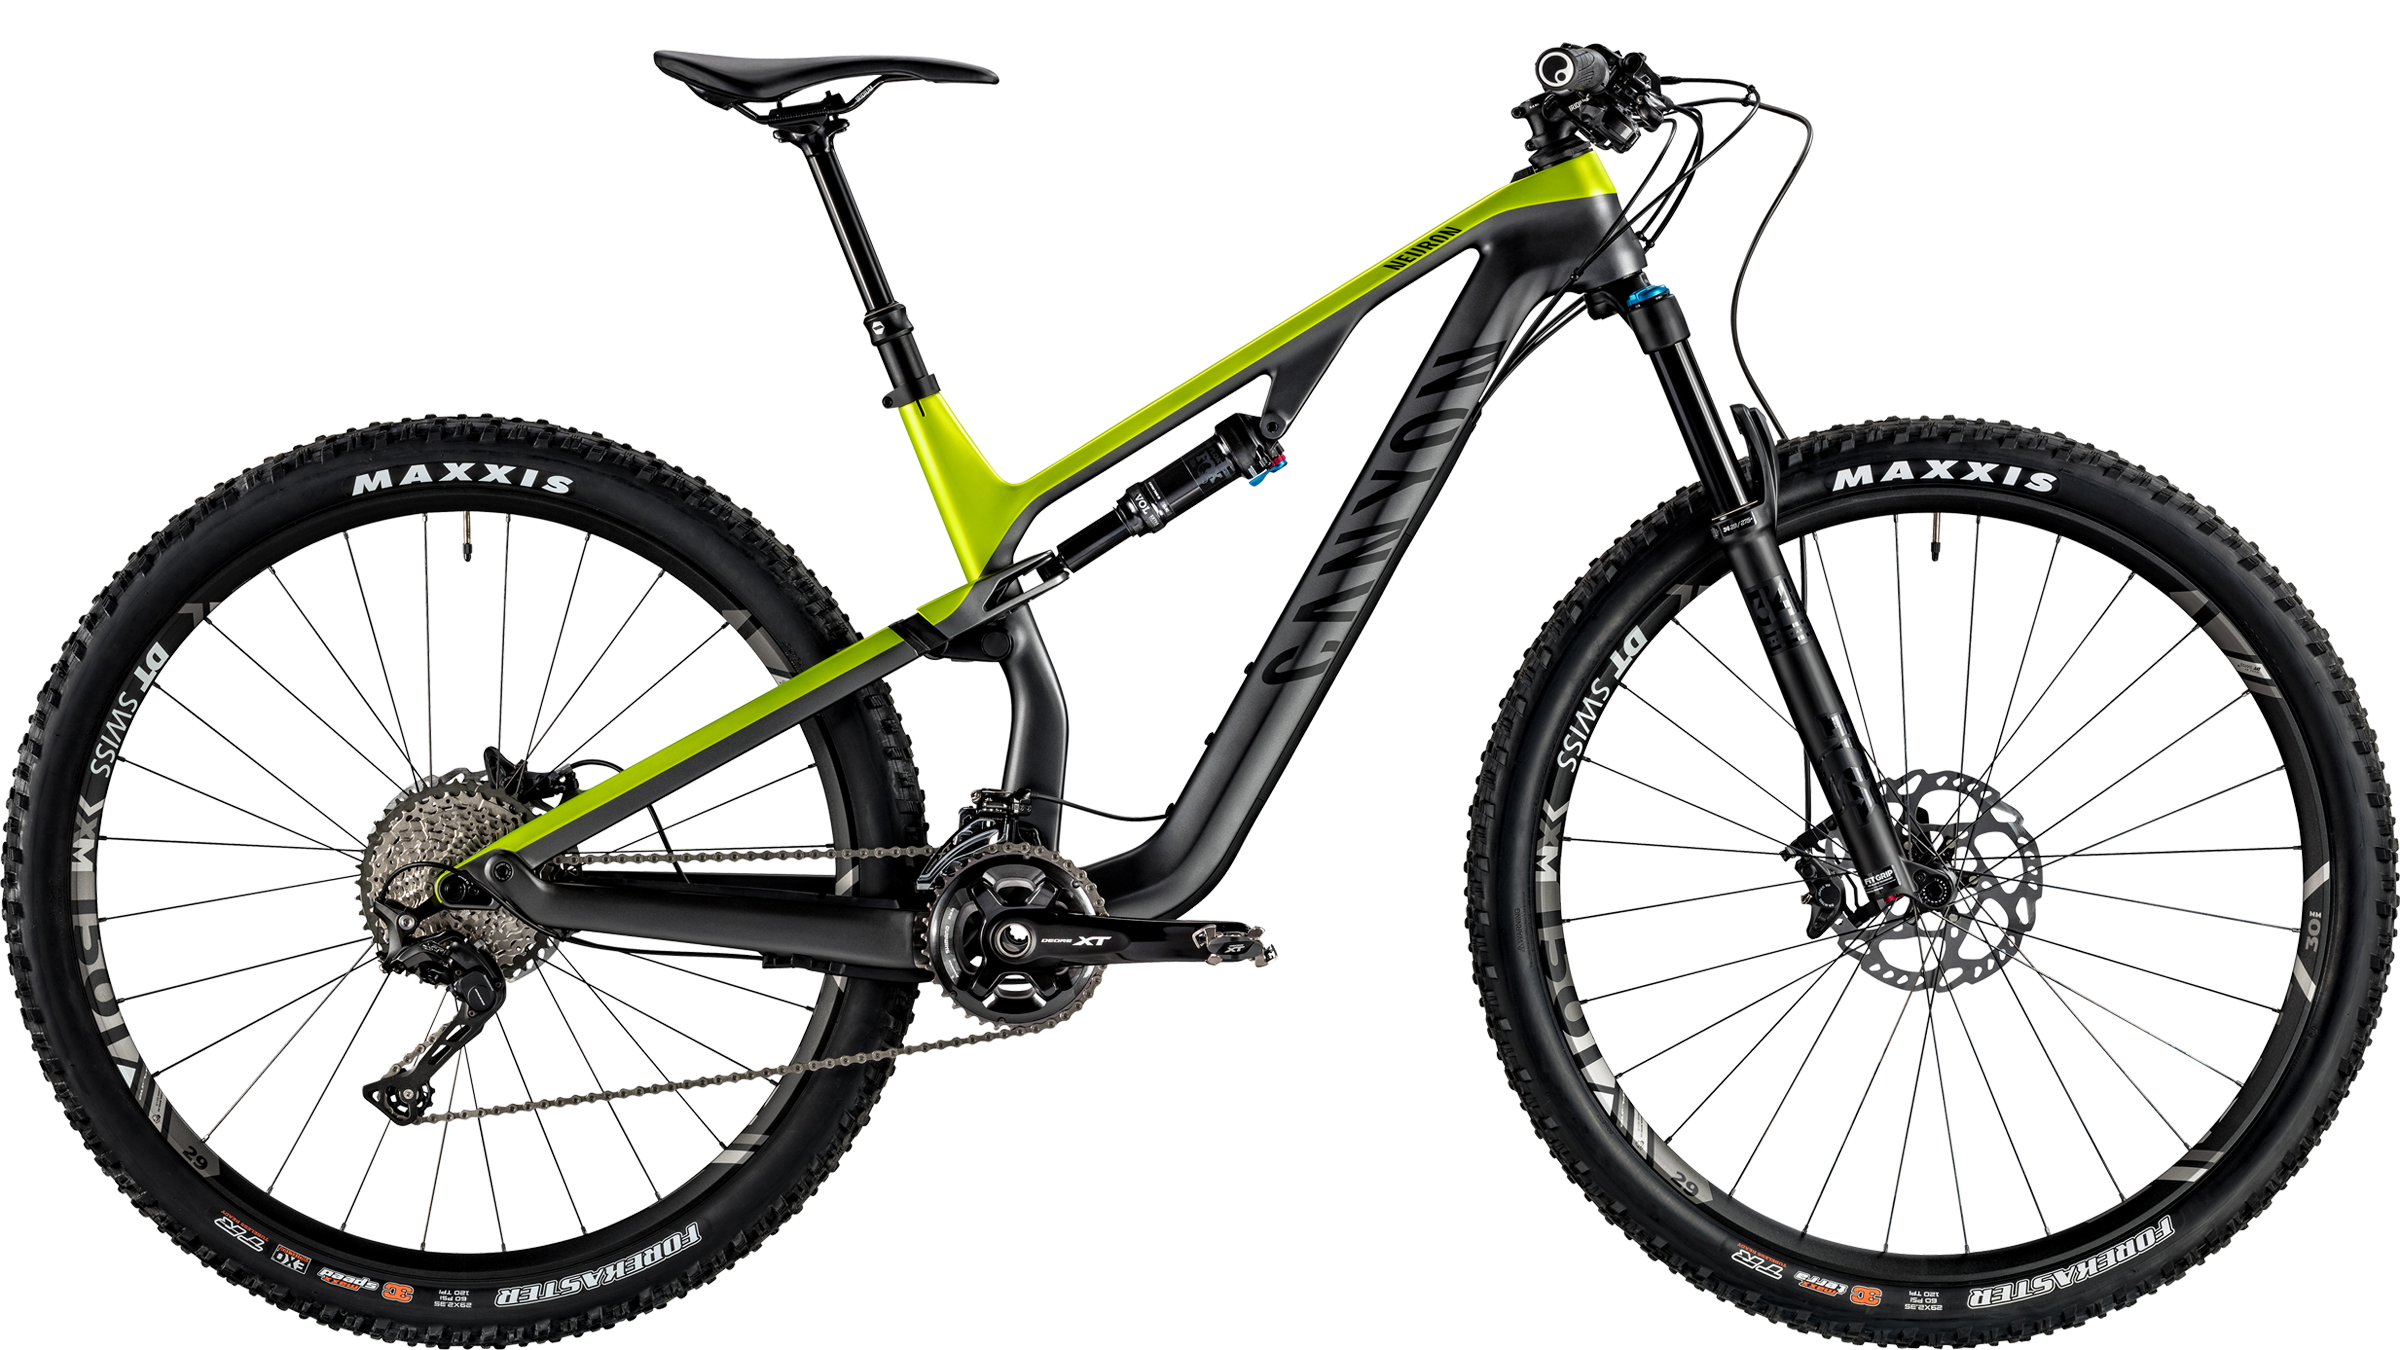 Neuron CF 9.0 | Mountainbikes